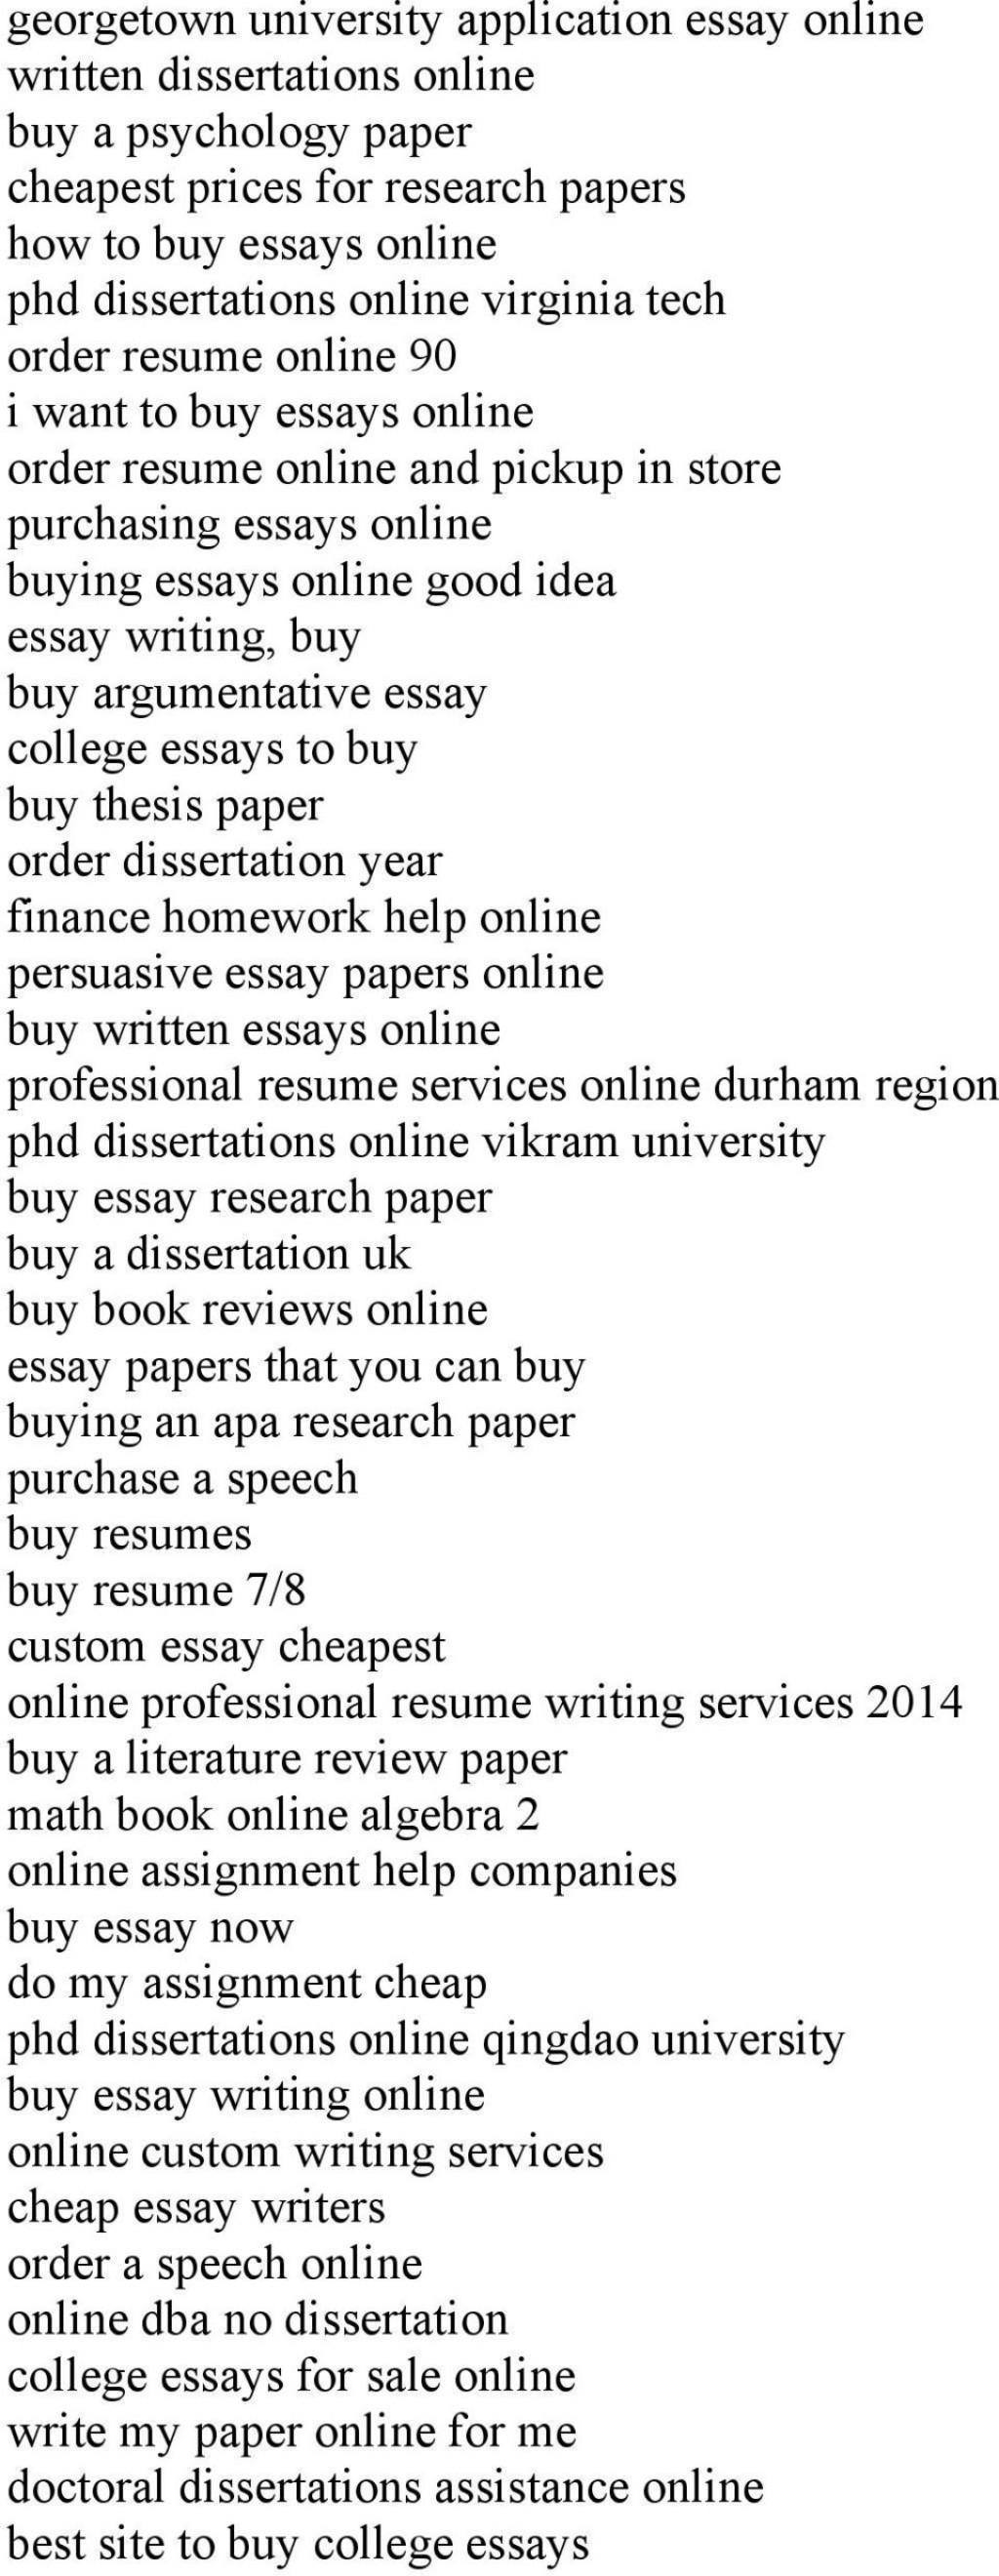 004 Research Paper Buying Page 4 Best A Behaviour Online Behavior Impulse Papers Large